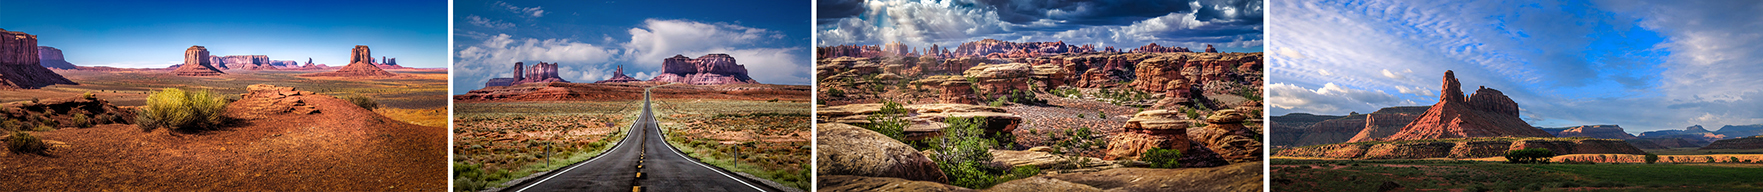 randy wayman iphotography outstanding contribution landscape america mid west